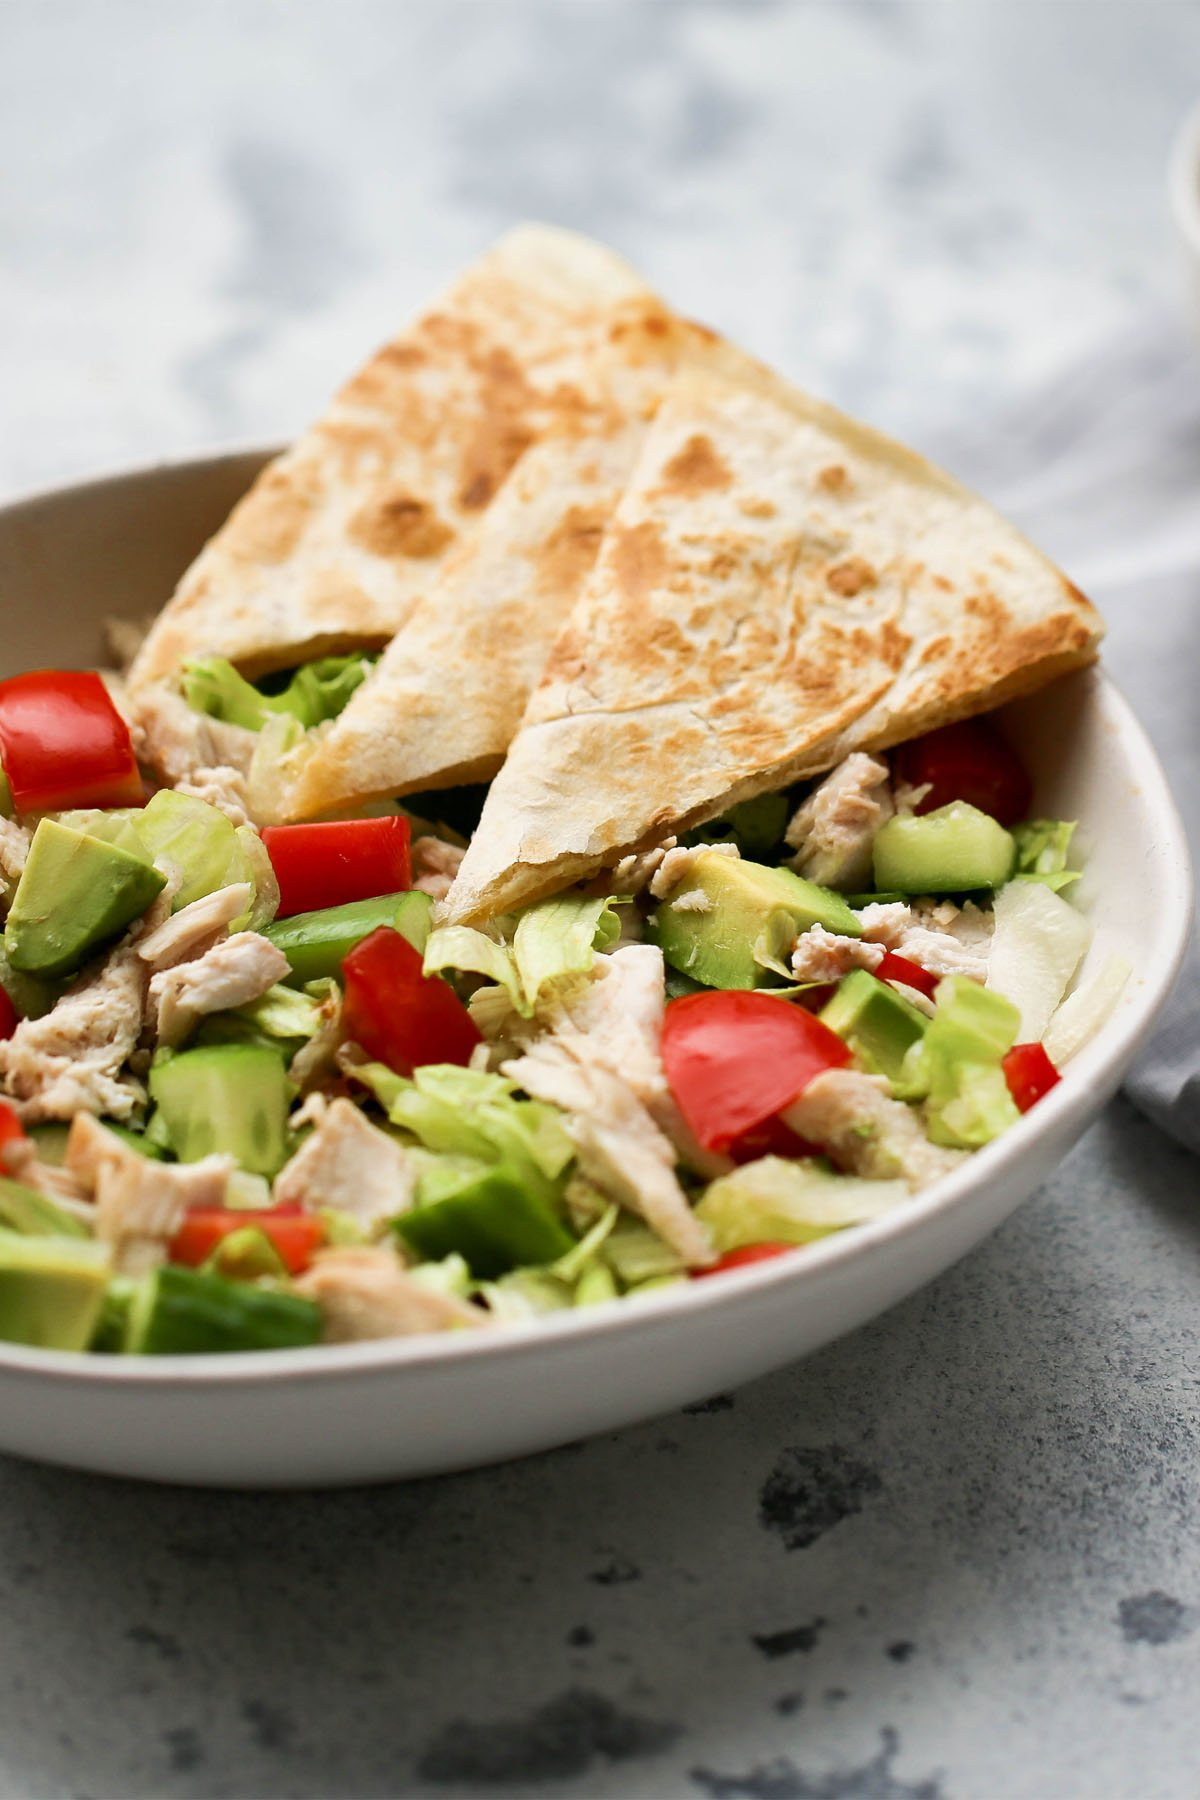 Chopped Chicken + Cheesy Chicken Quesadilla Salad - You Totally Got This - Quick & Easy Dinner Recipes